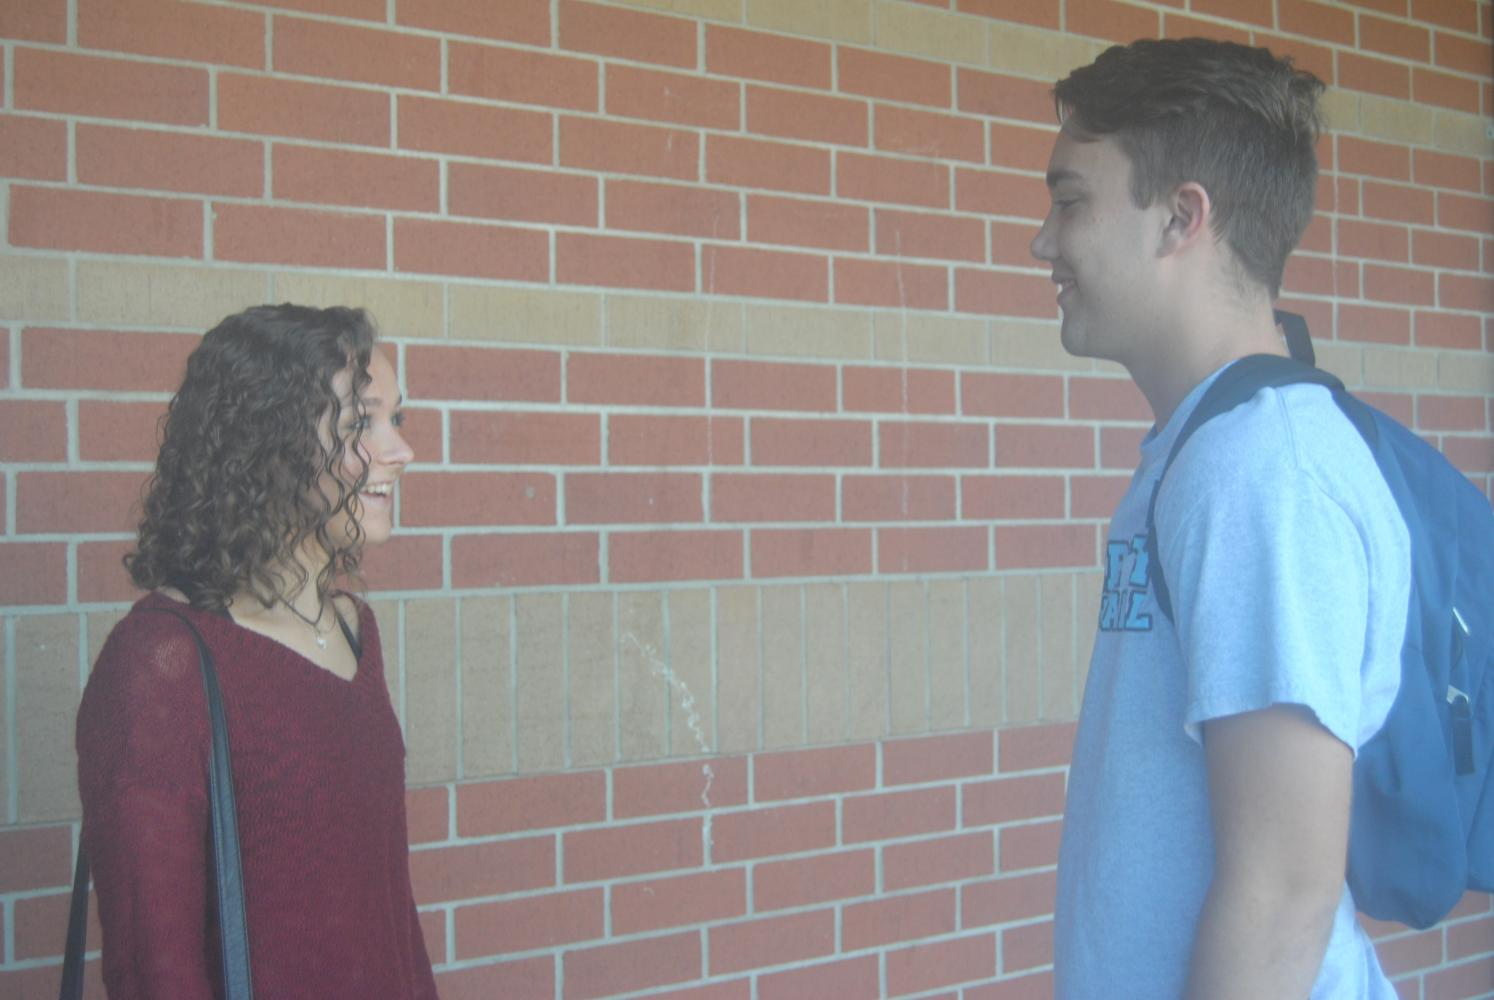 Seniors Nicholas Hurley and Sam Thue reflect on the awkwardness and funny times of the